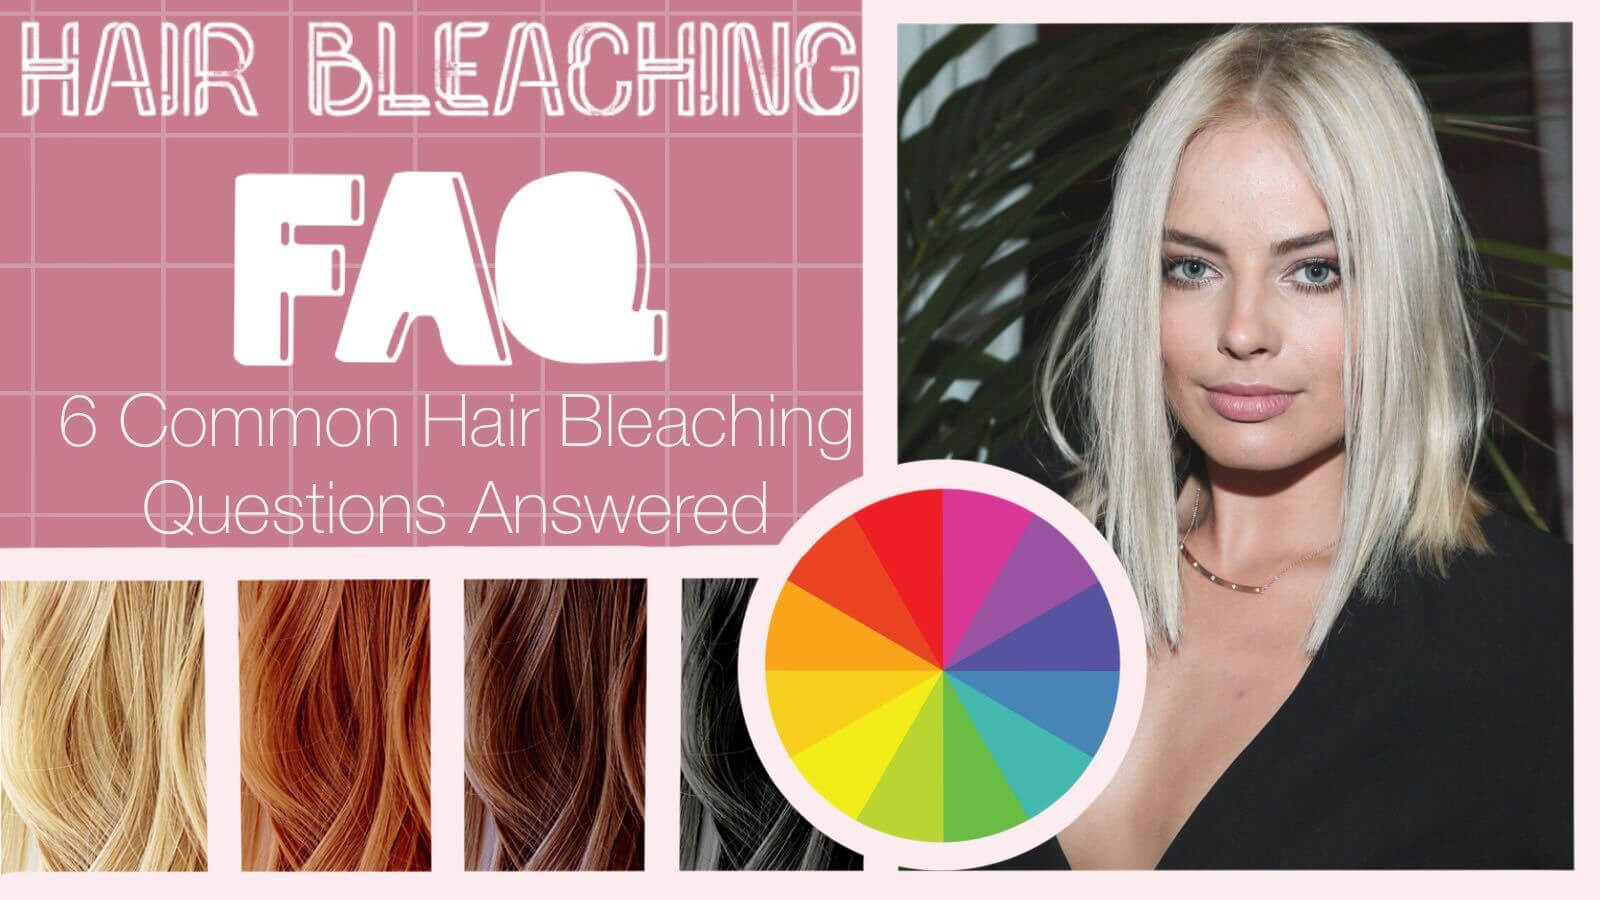 Common Questions when Bleaching Your Hair collage and graphic